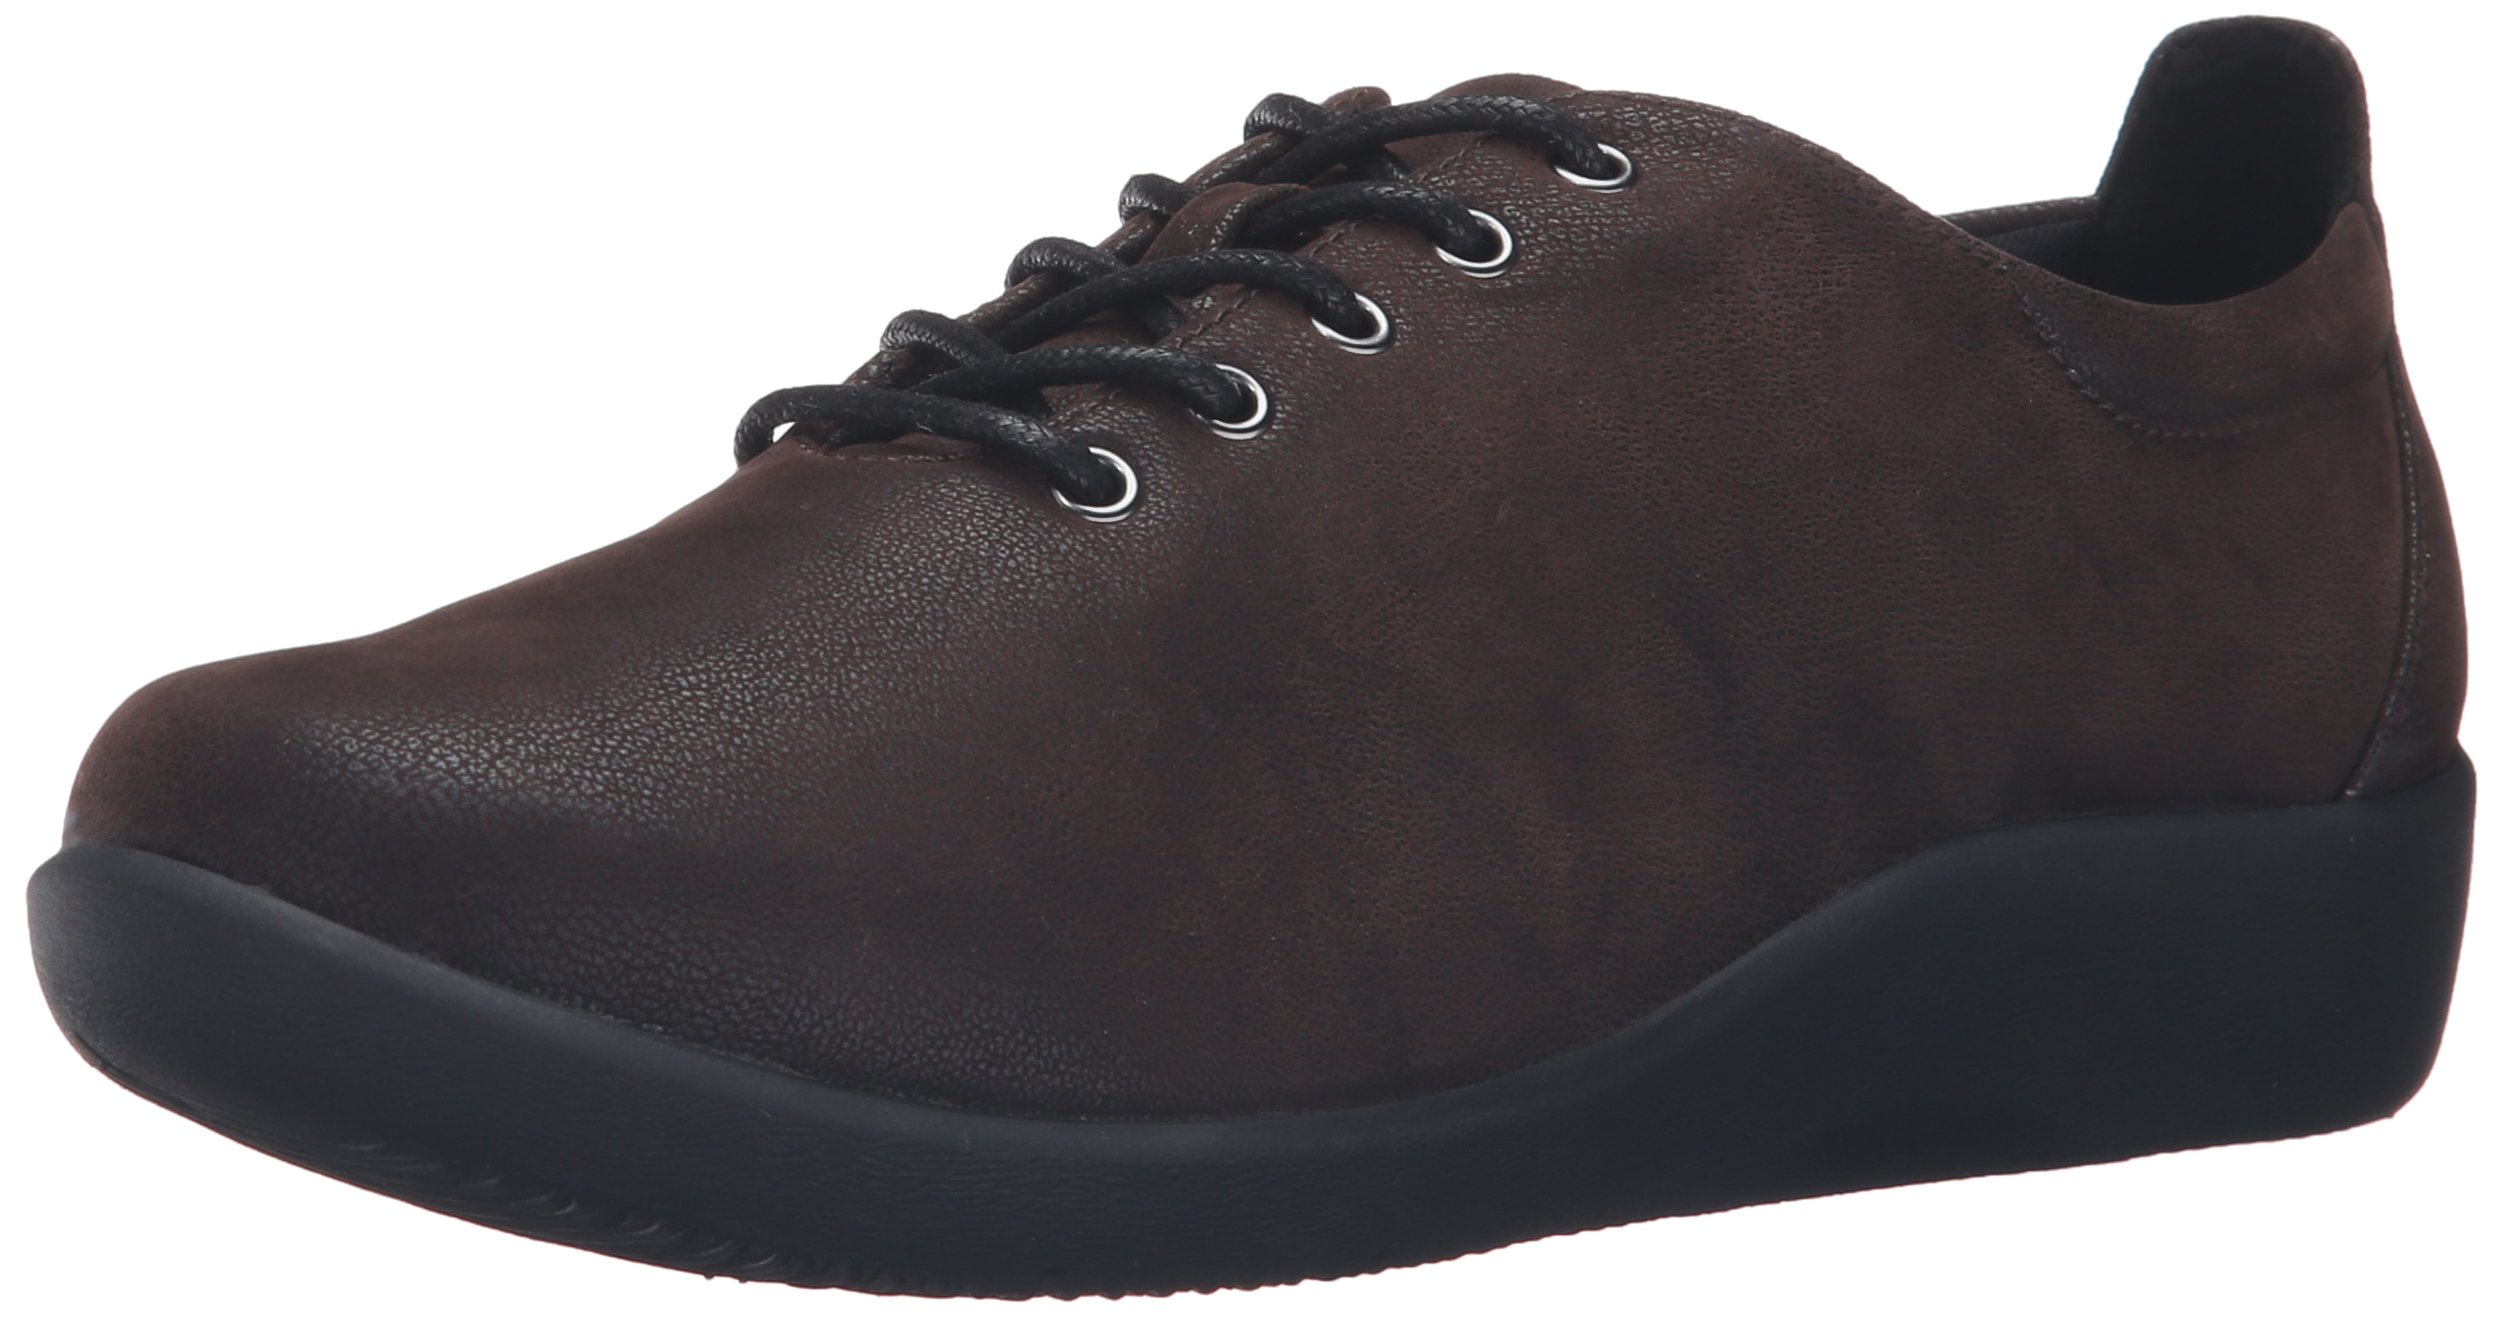 Clarks Women's CloudSteppers Sillian Tino Lace-Up Shoe